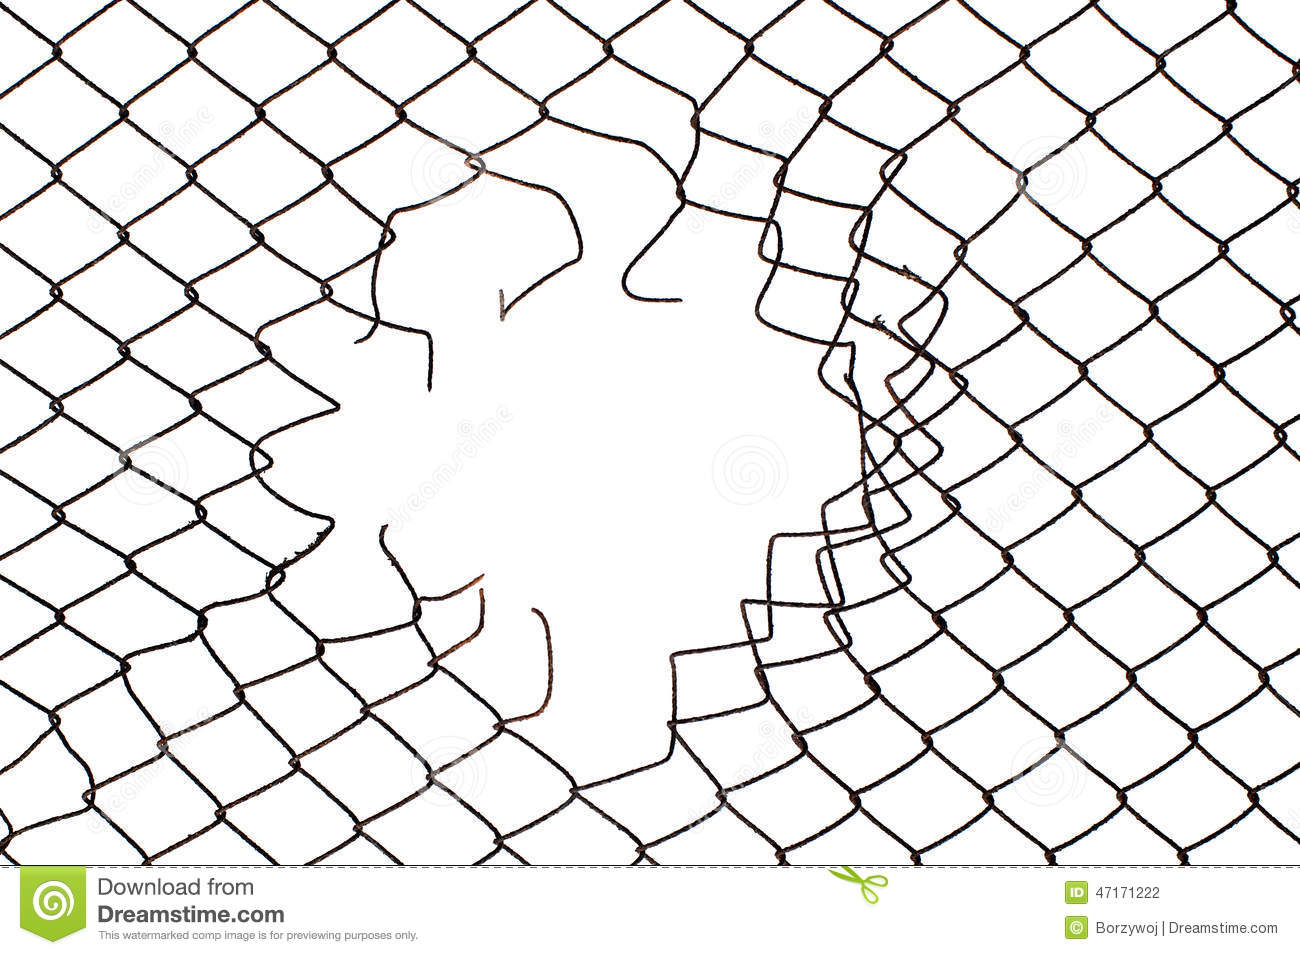 Center Hole In The Mesh Wire Fence Stock Photo - Image of gaol, link ...